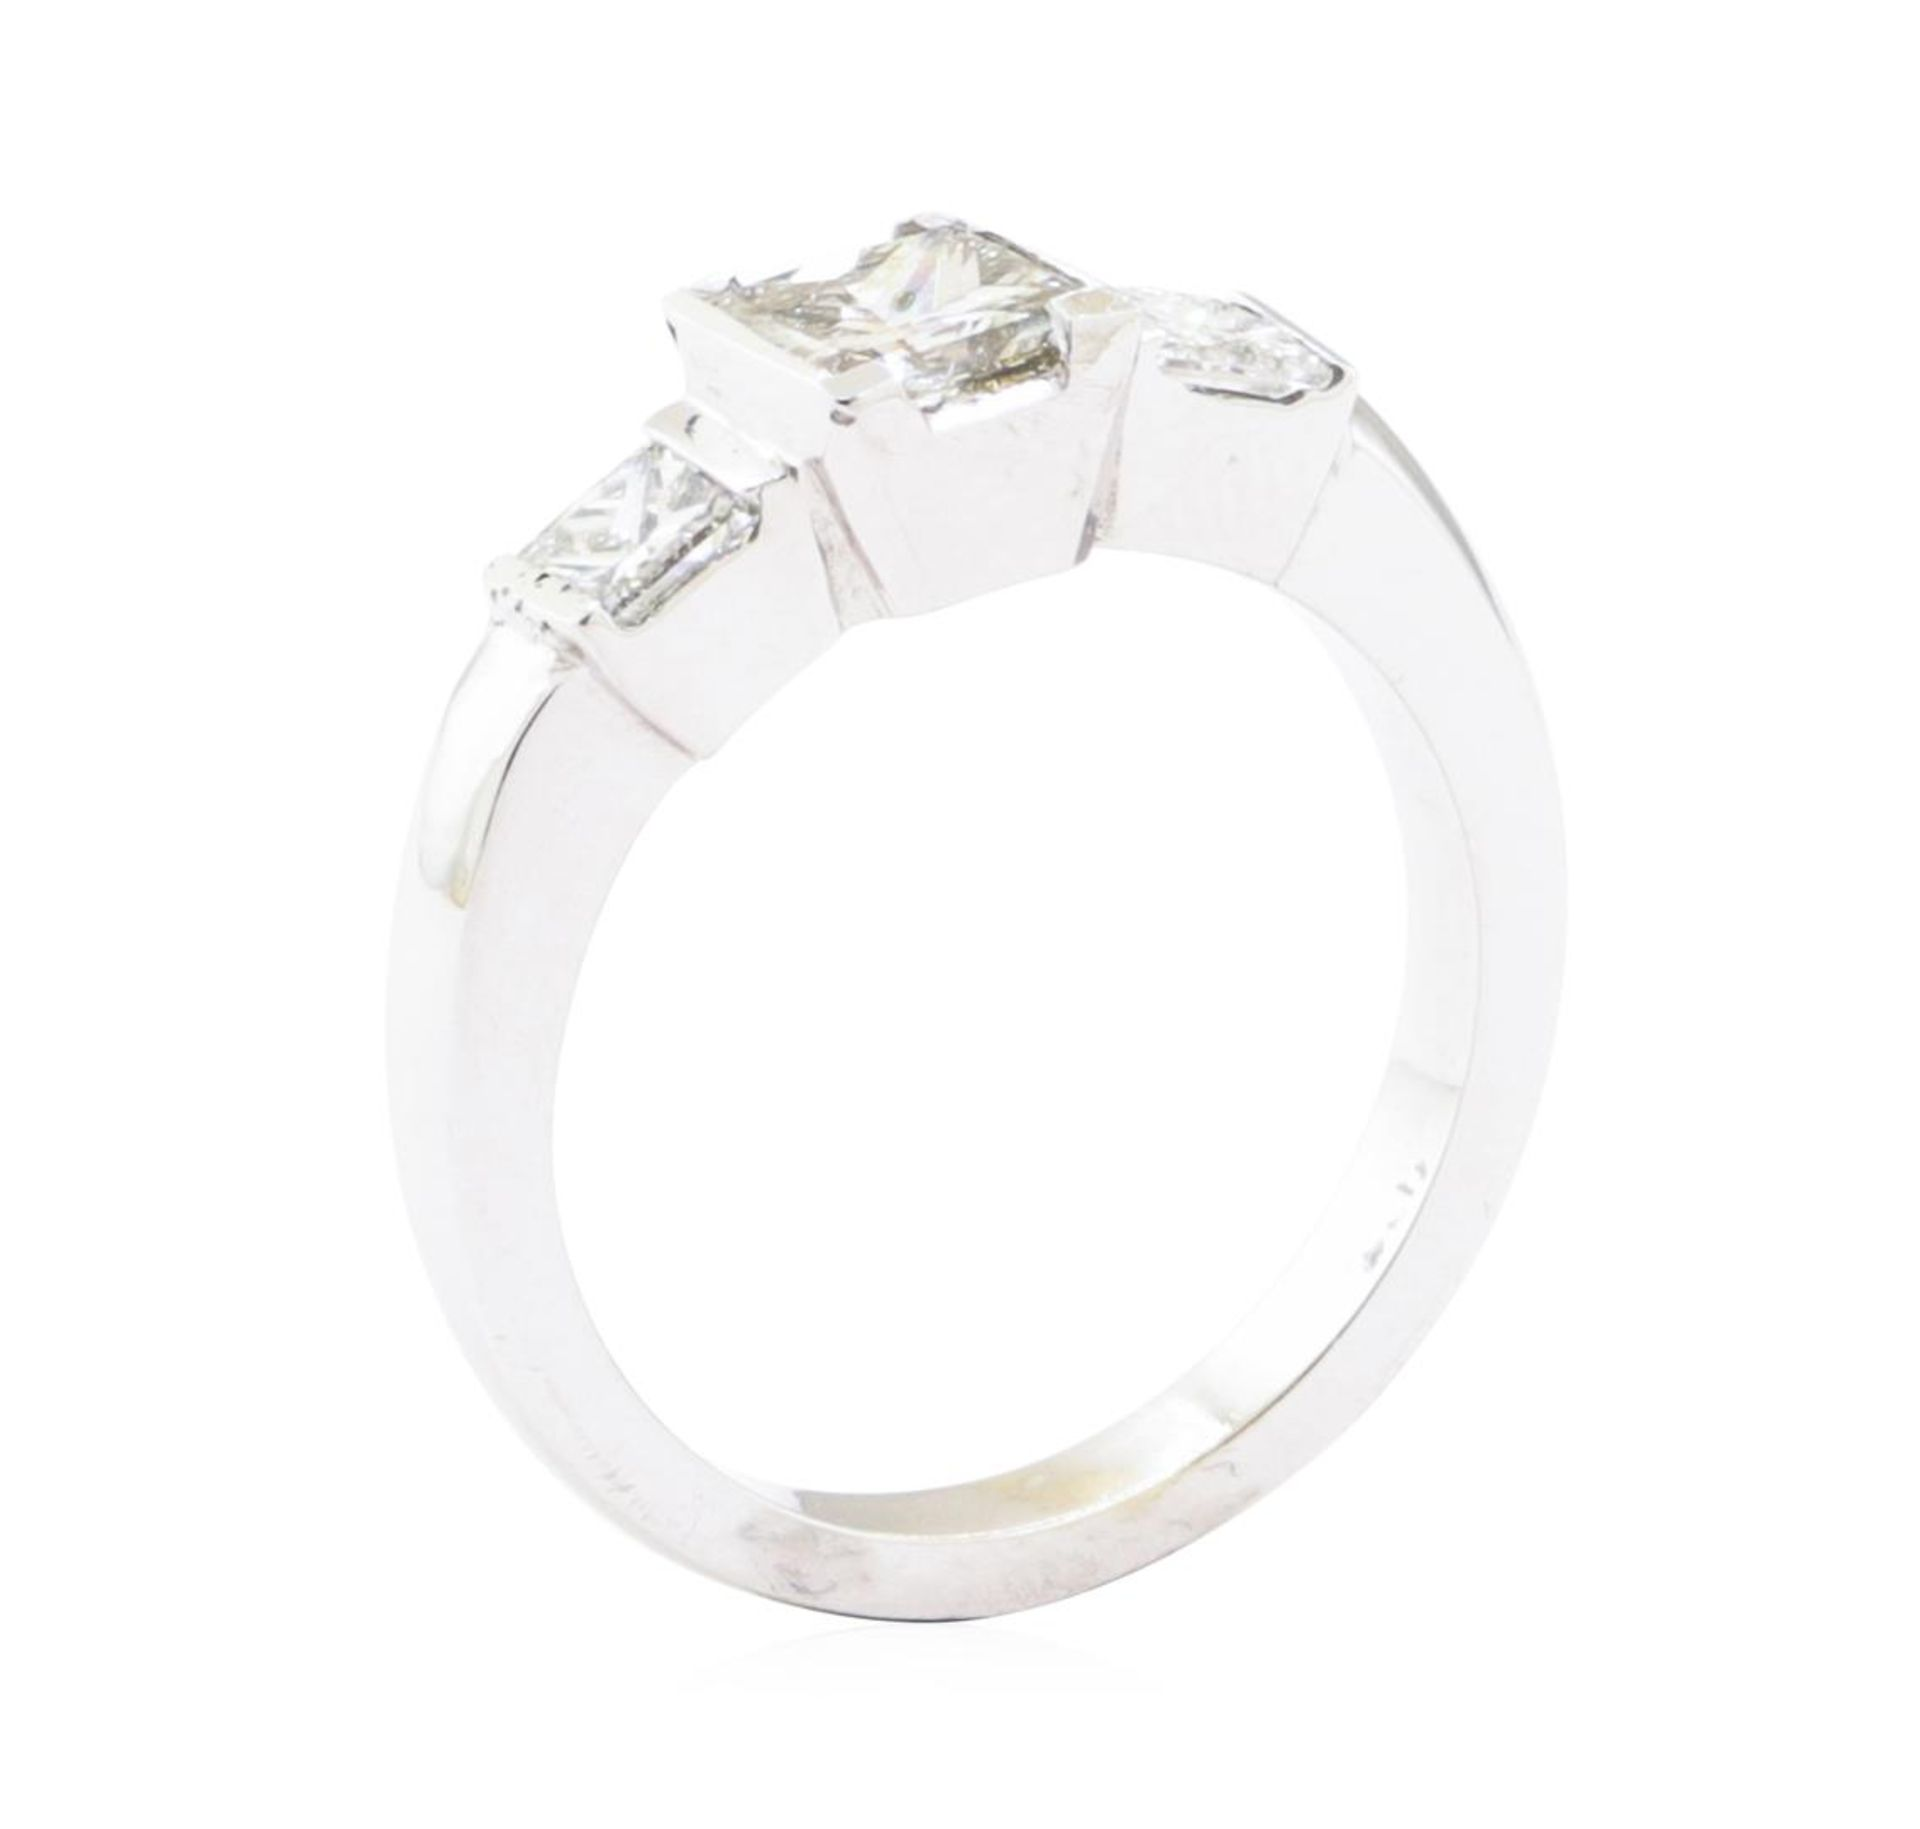 1.45 ctw Diamond Ring - 14KT White Gold - Image 4 of 5